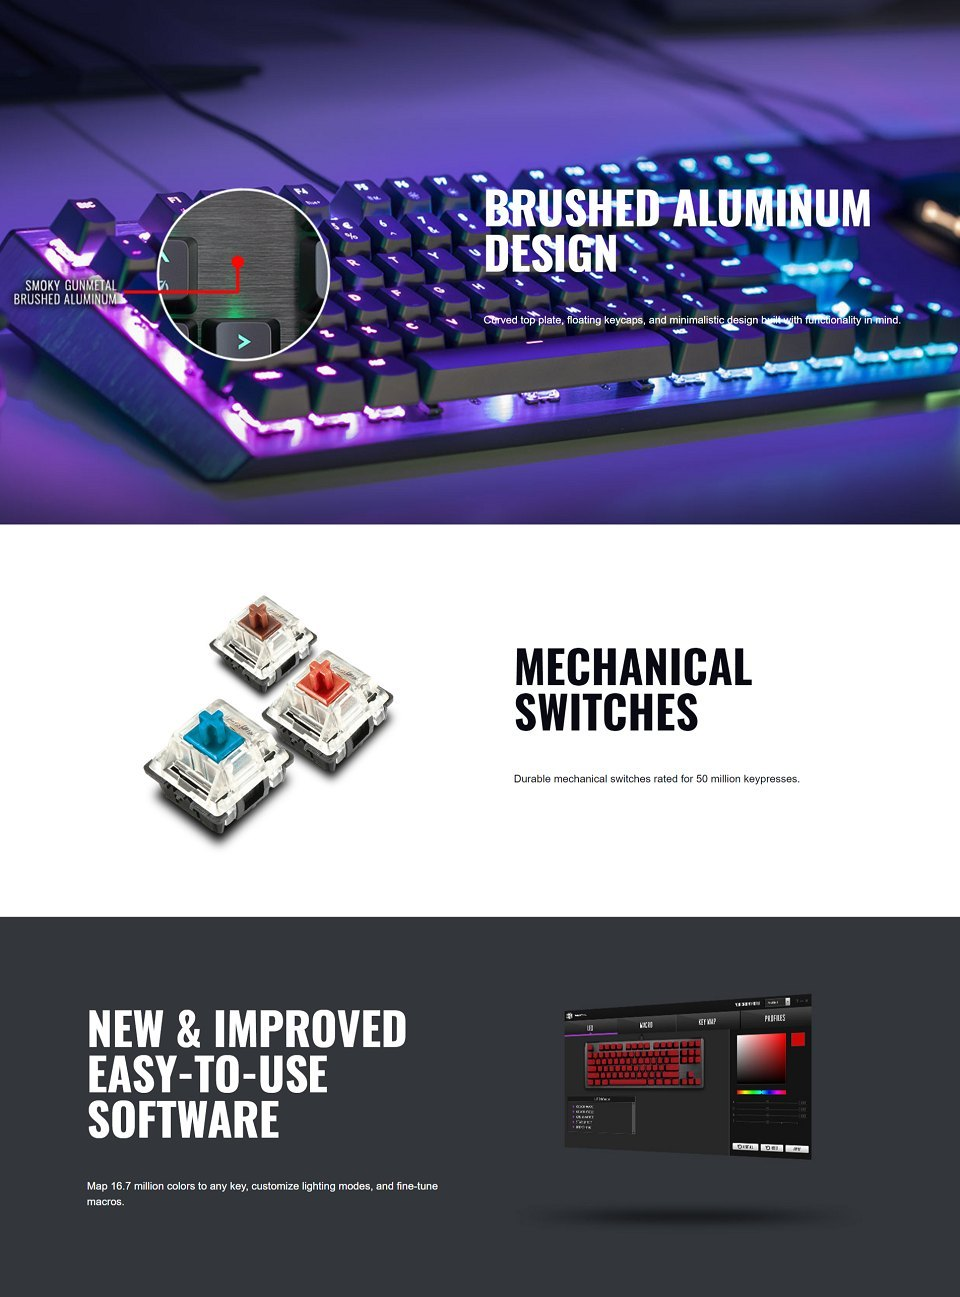 Cooler Master MasterKeys CK550 RGB Red Switch features 2